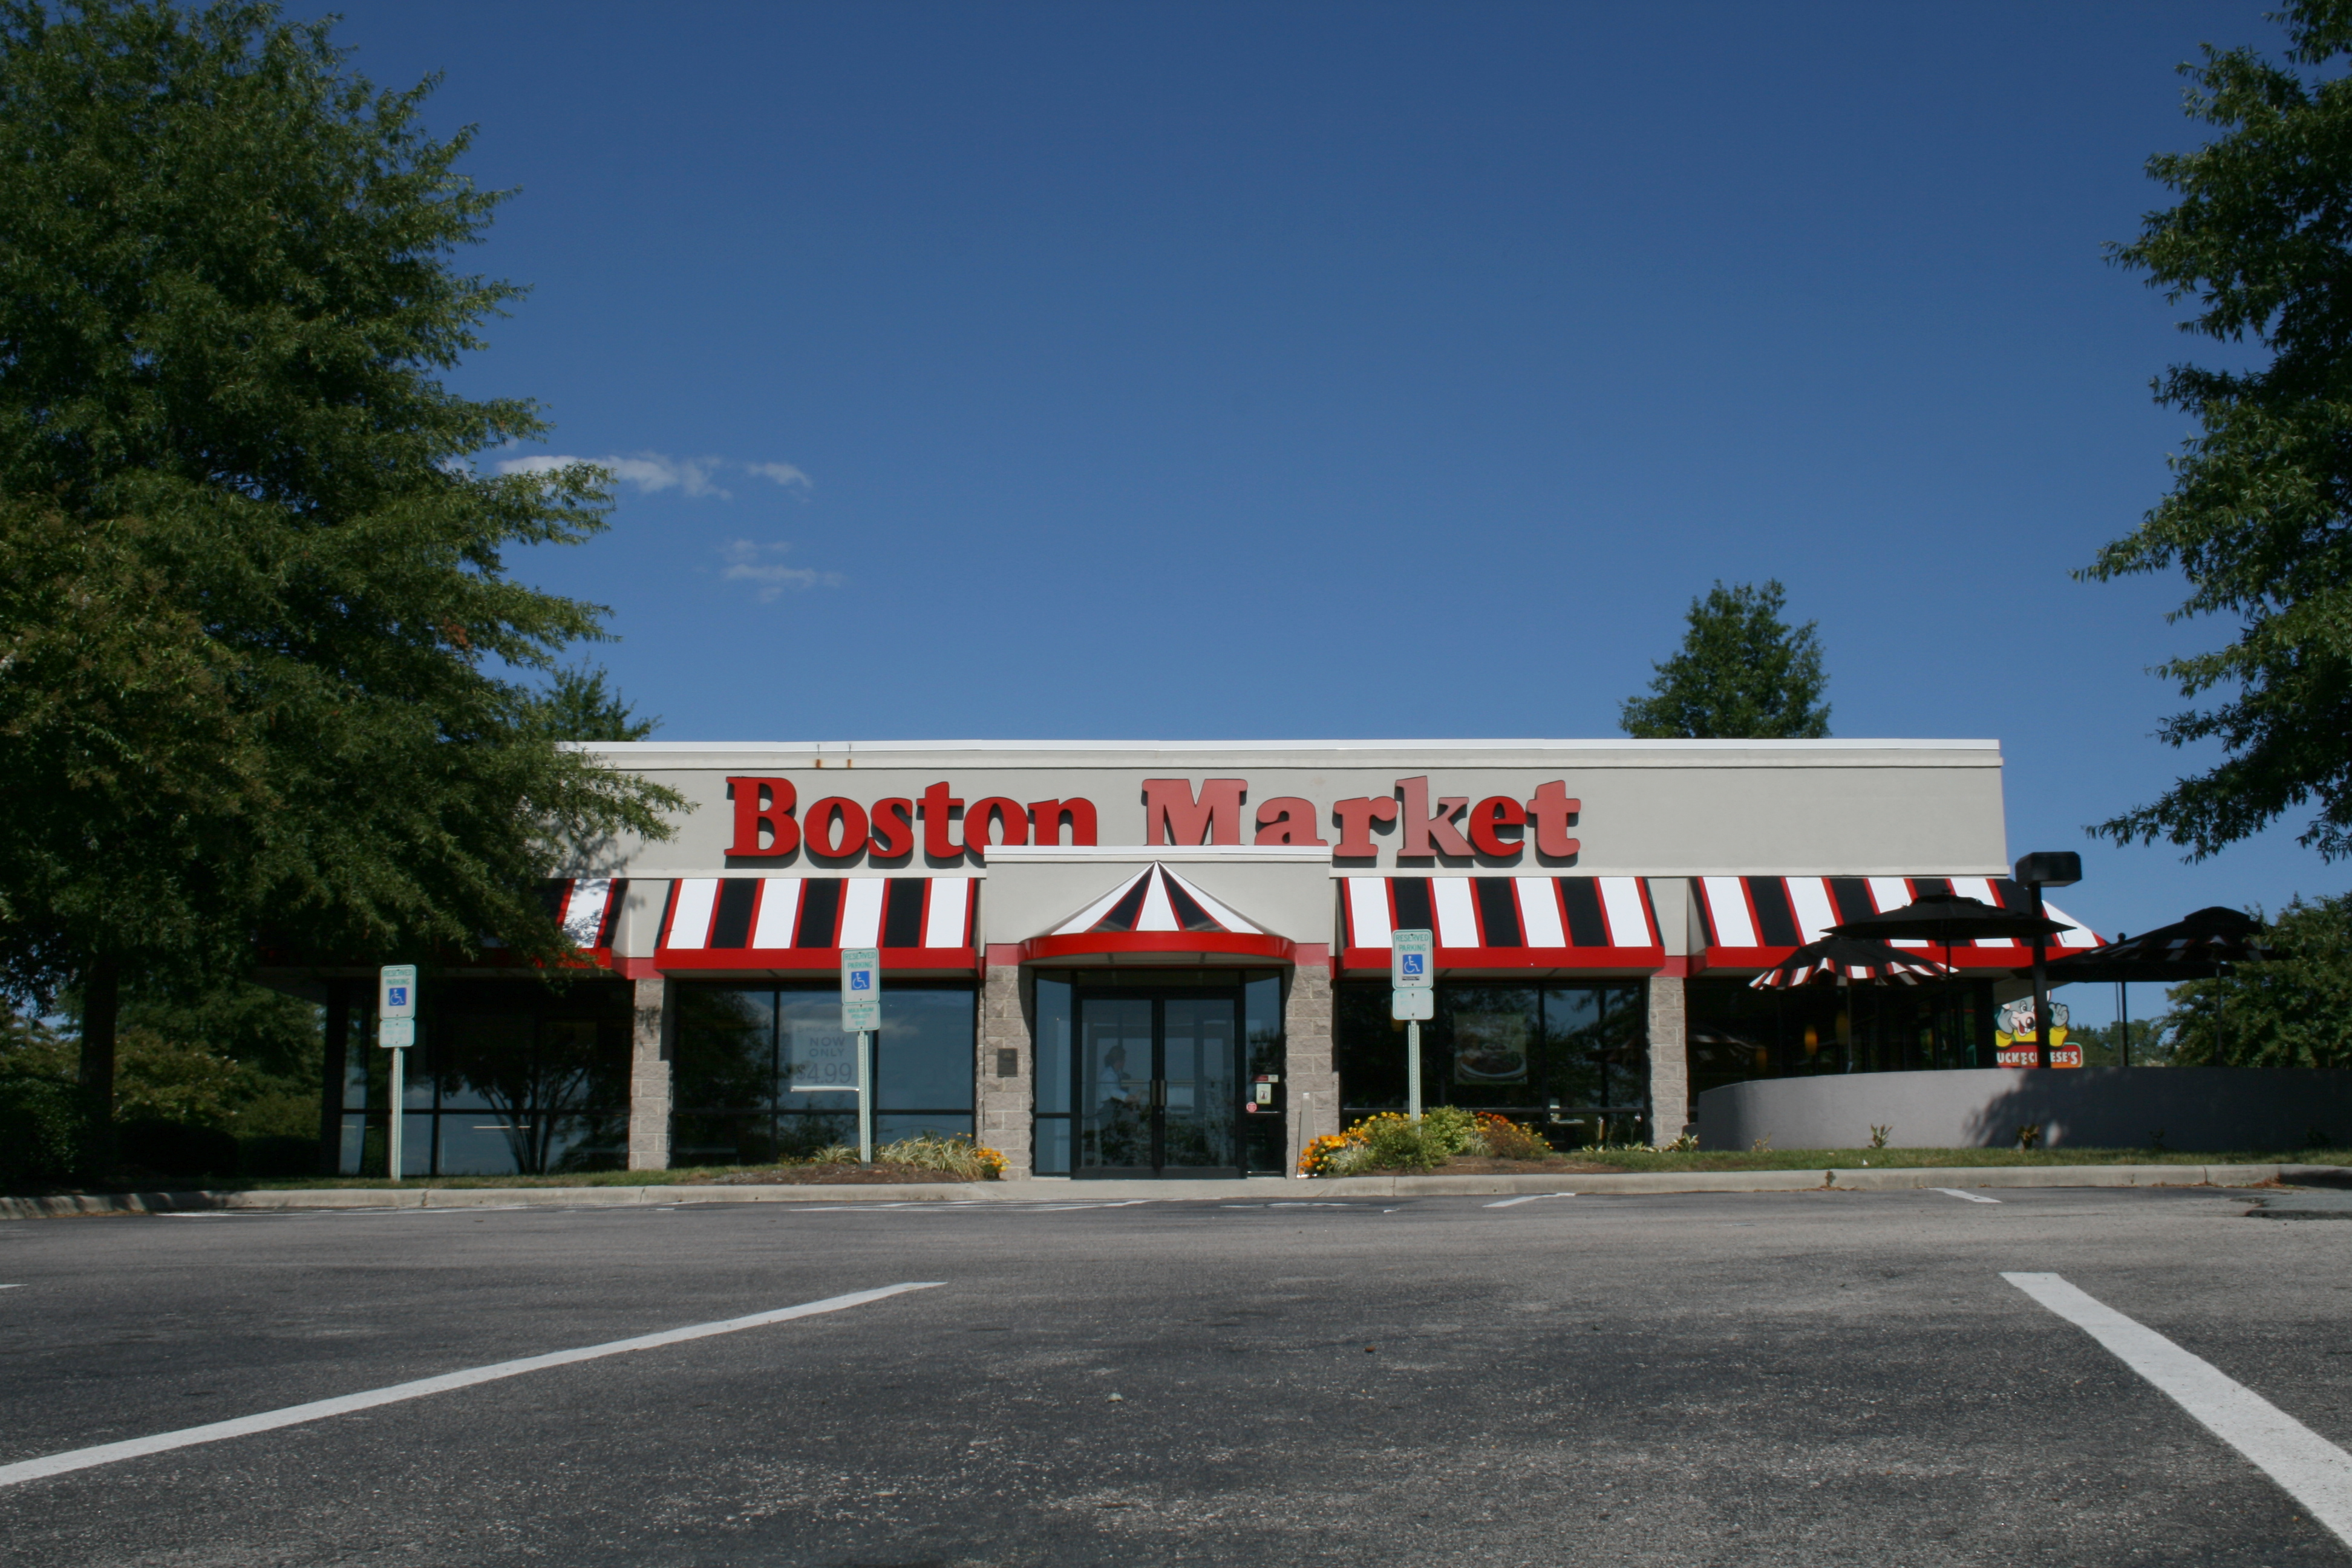 Jul 17, · Boston Market features delicious homestyle meals, including its famous rotisserie chicken and a variety of gourmet sides.4/5().